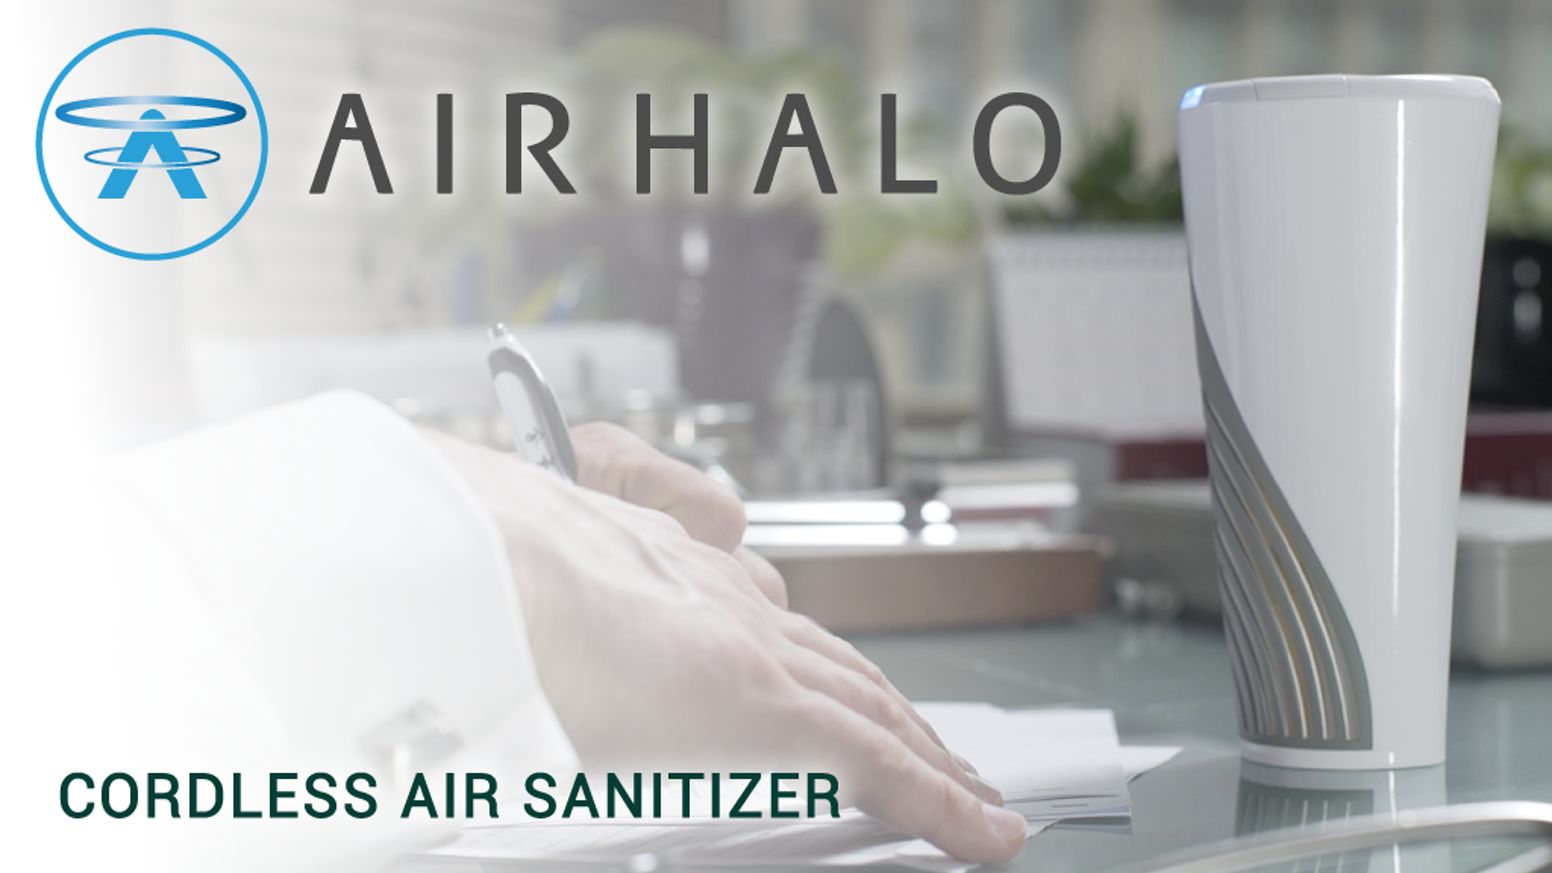 Travel, work & play worry-free of infections/allergies. Air Halo's MicroLightnings destroy germs in seconds. Germ-full filters no more.